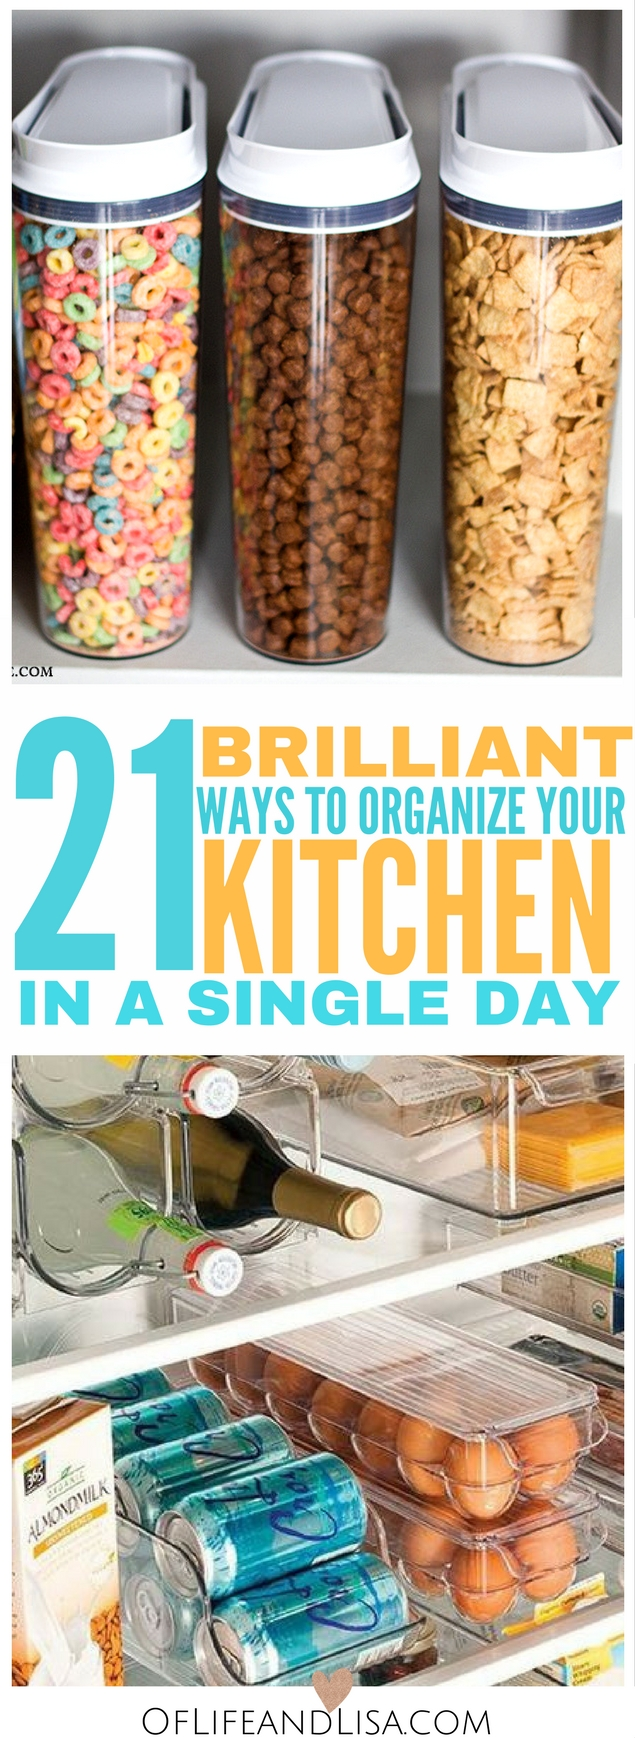 How To Organize Your Kitchen 21: 21 Brilliant DIY Kitchen Organization Ideas